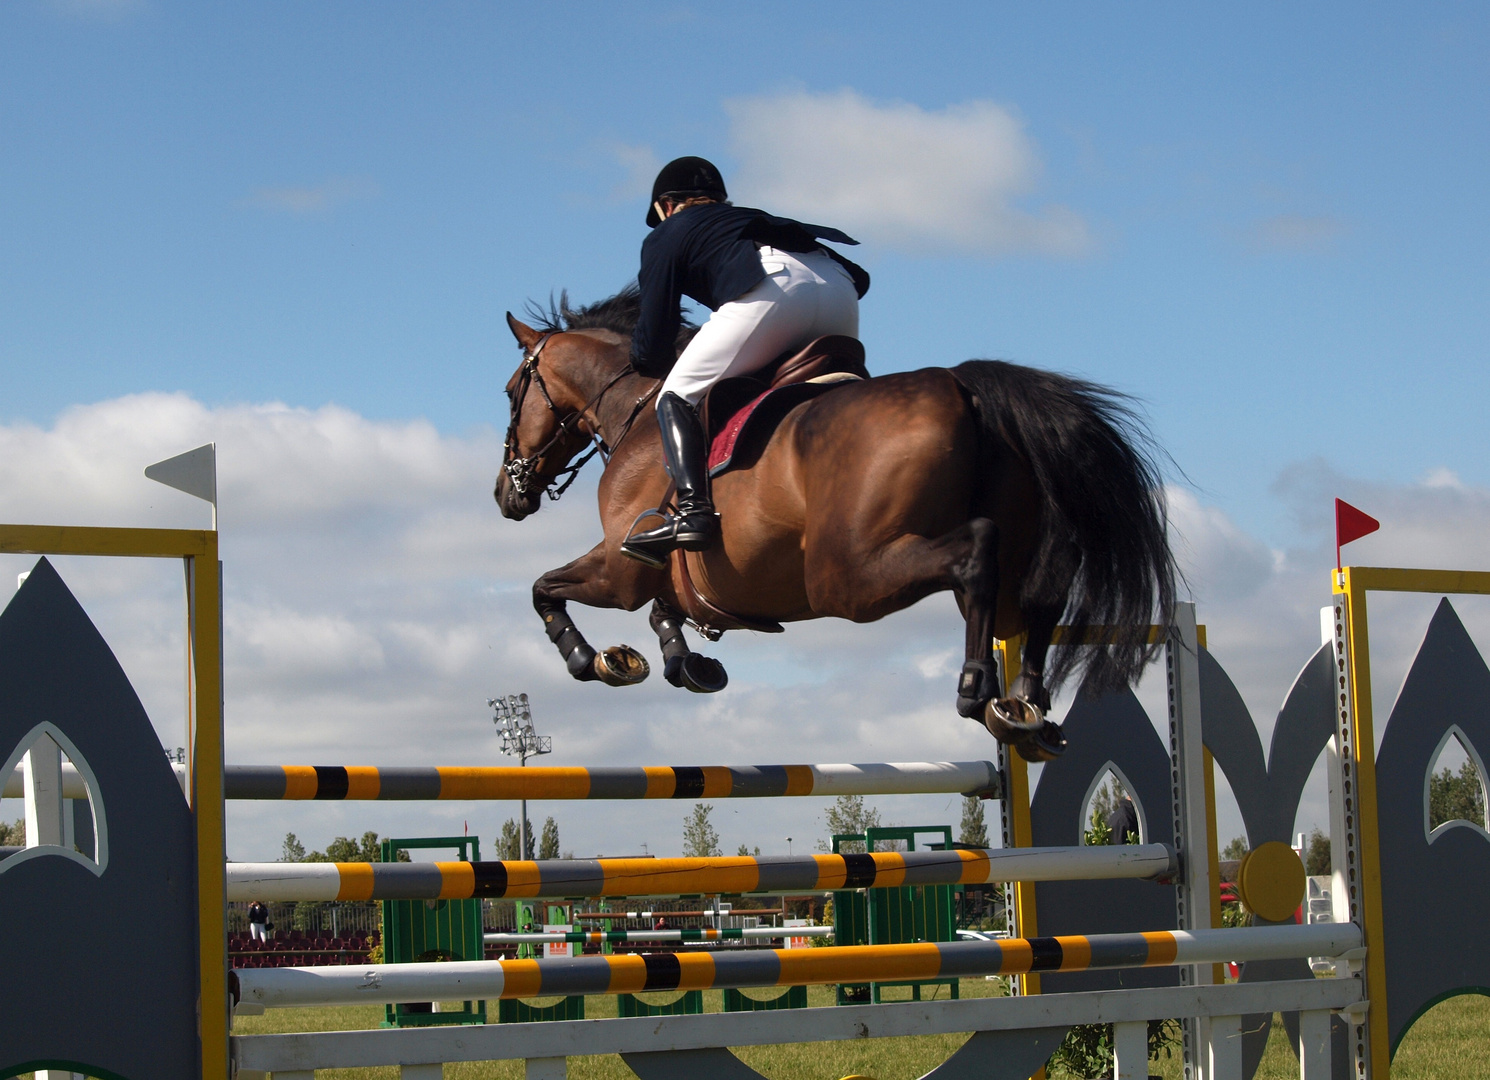 Jumping de Cabourg